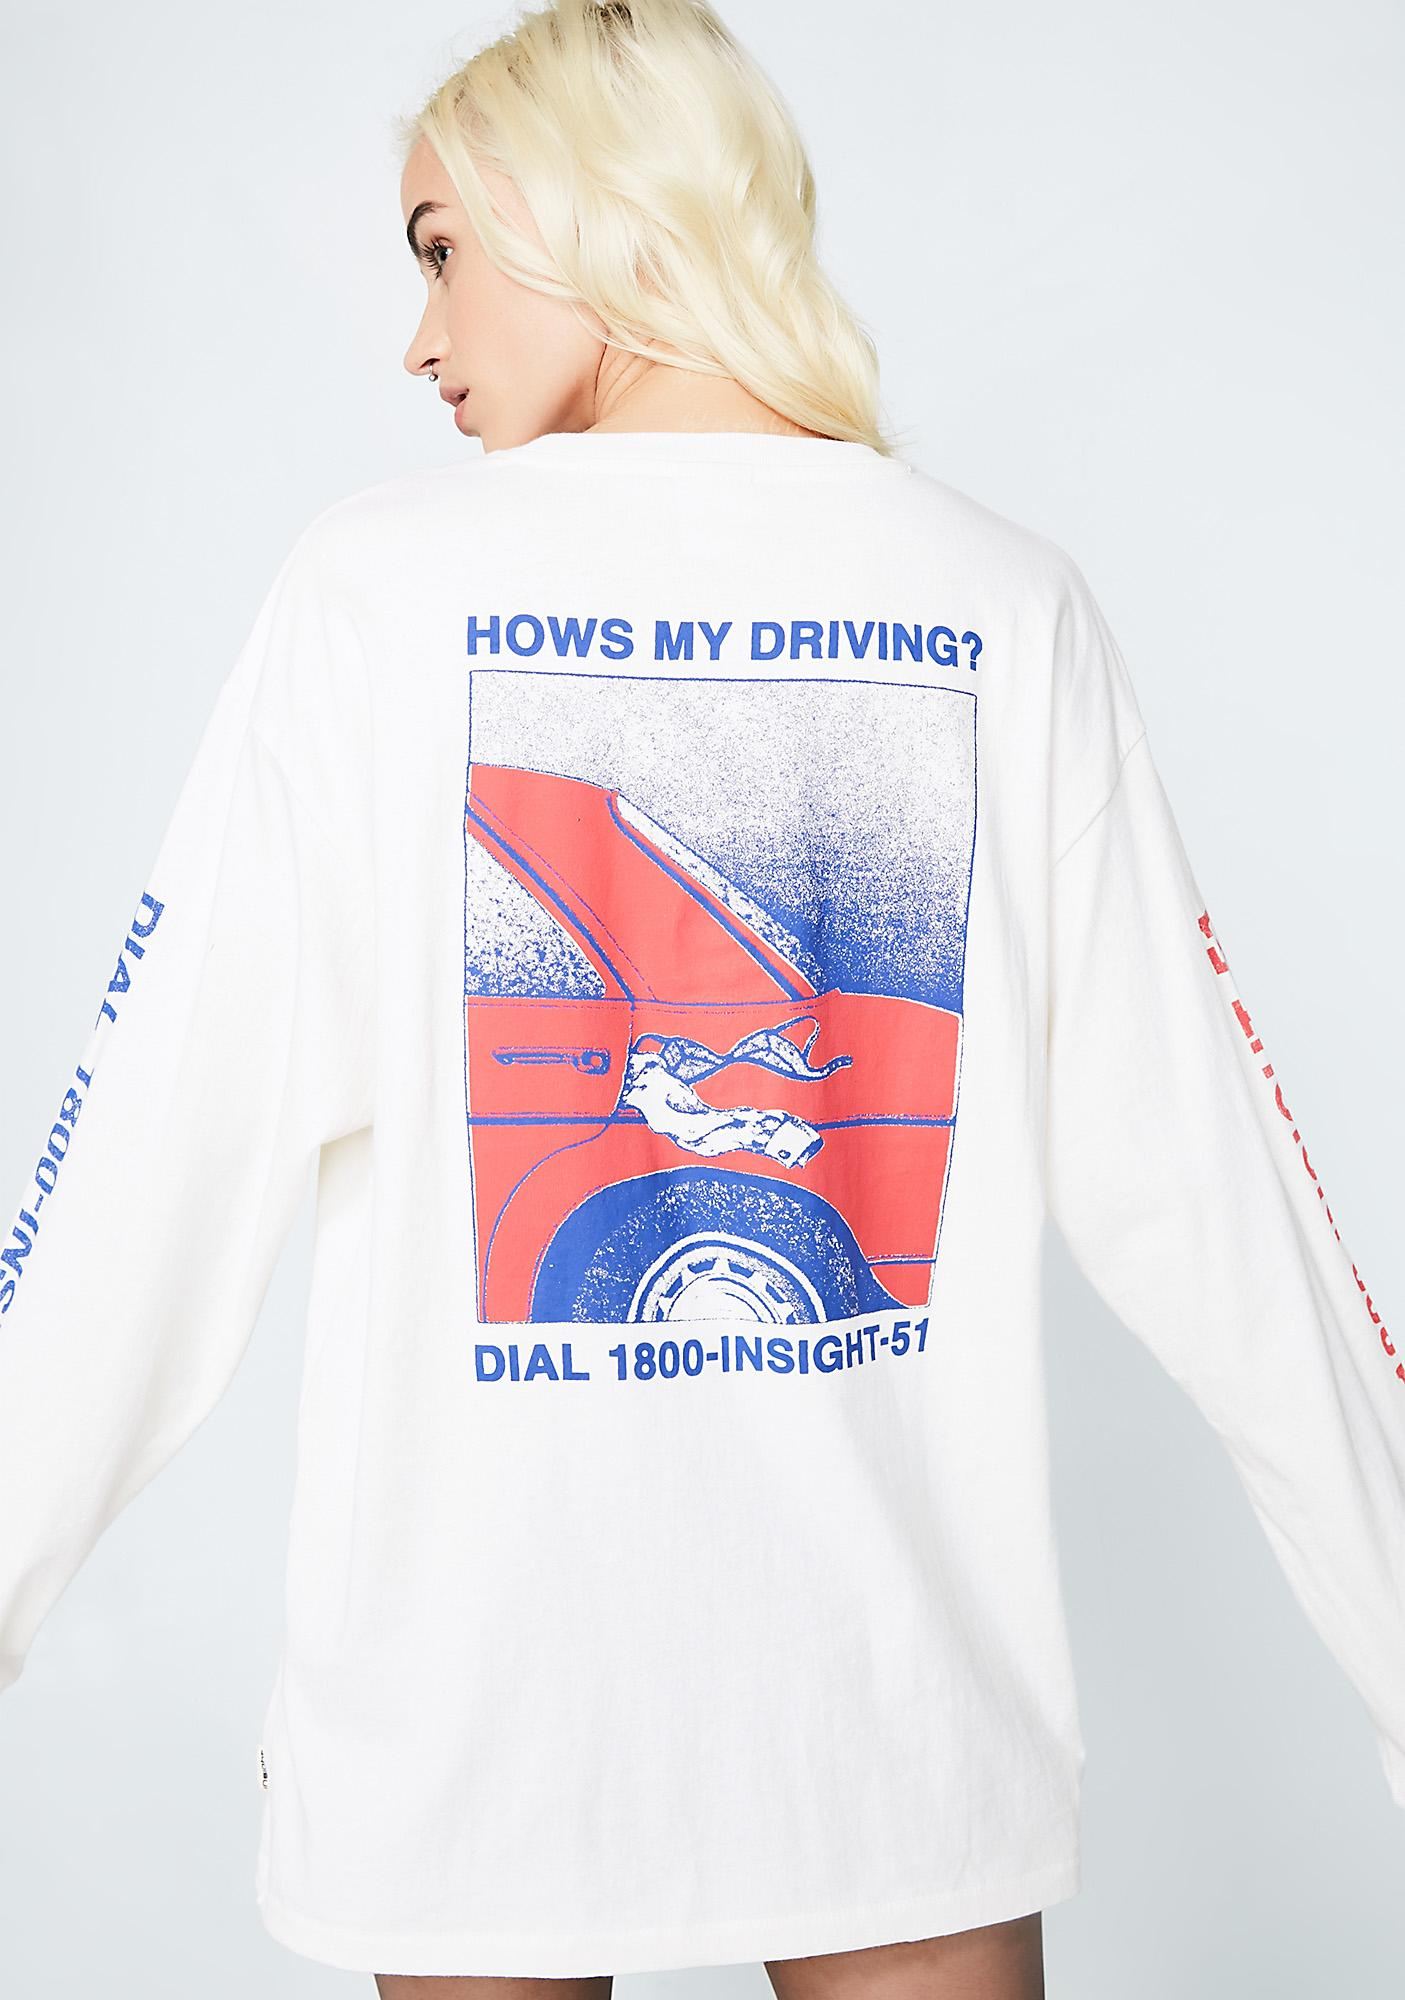 Insight Hows My Driving Long Sleeve Tee